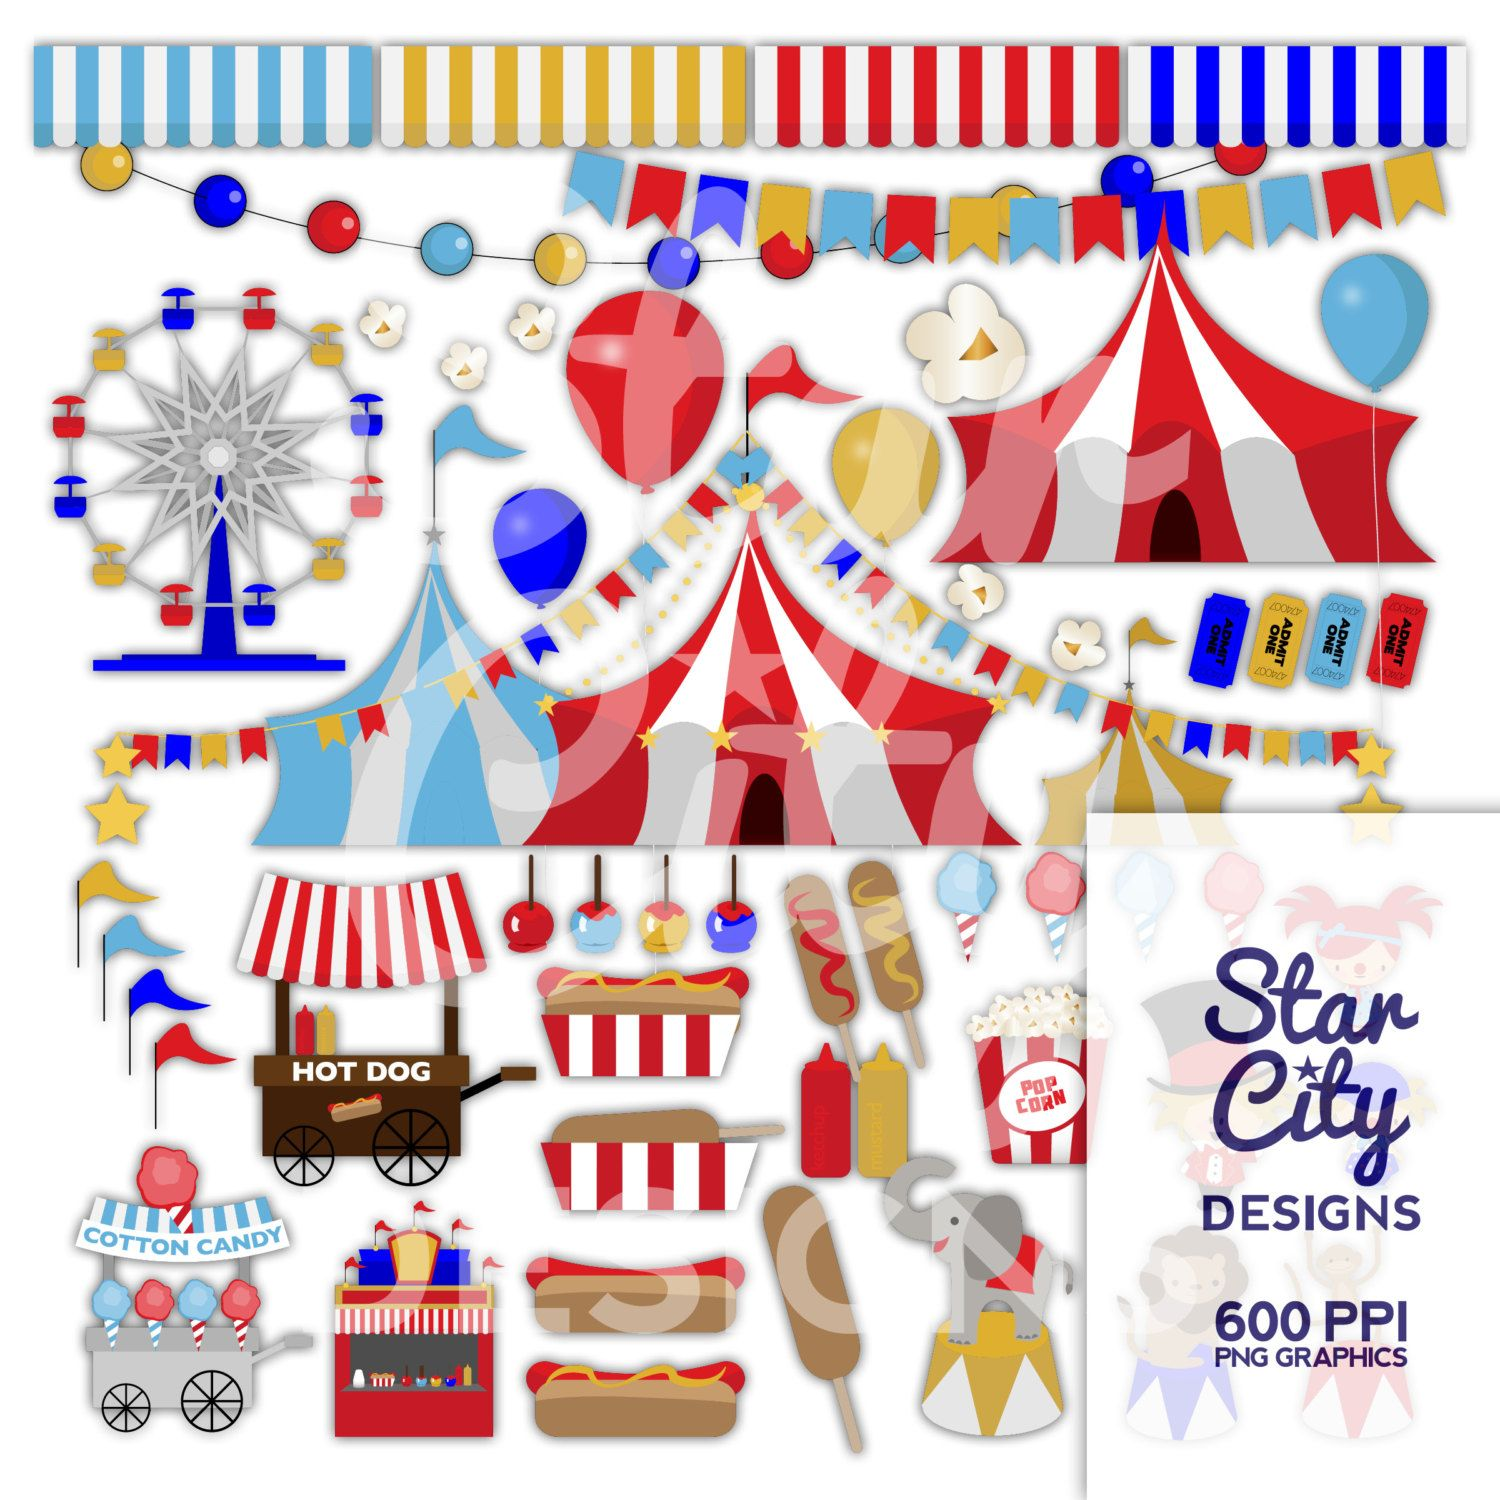 circus clipart carnival clipart big top clipart cotton candy clipart clipart clip art vector art vector graphics instant download pinned by  [ 1500 x 1500 Pixel ]